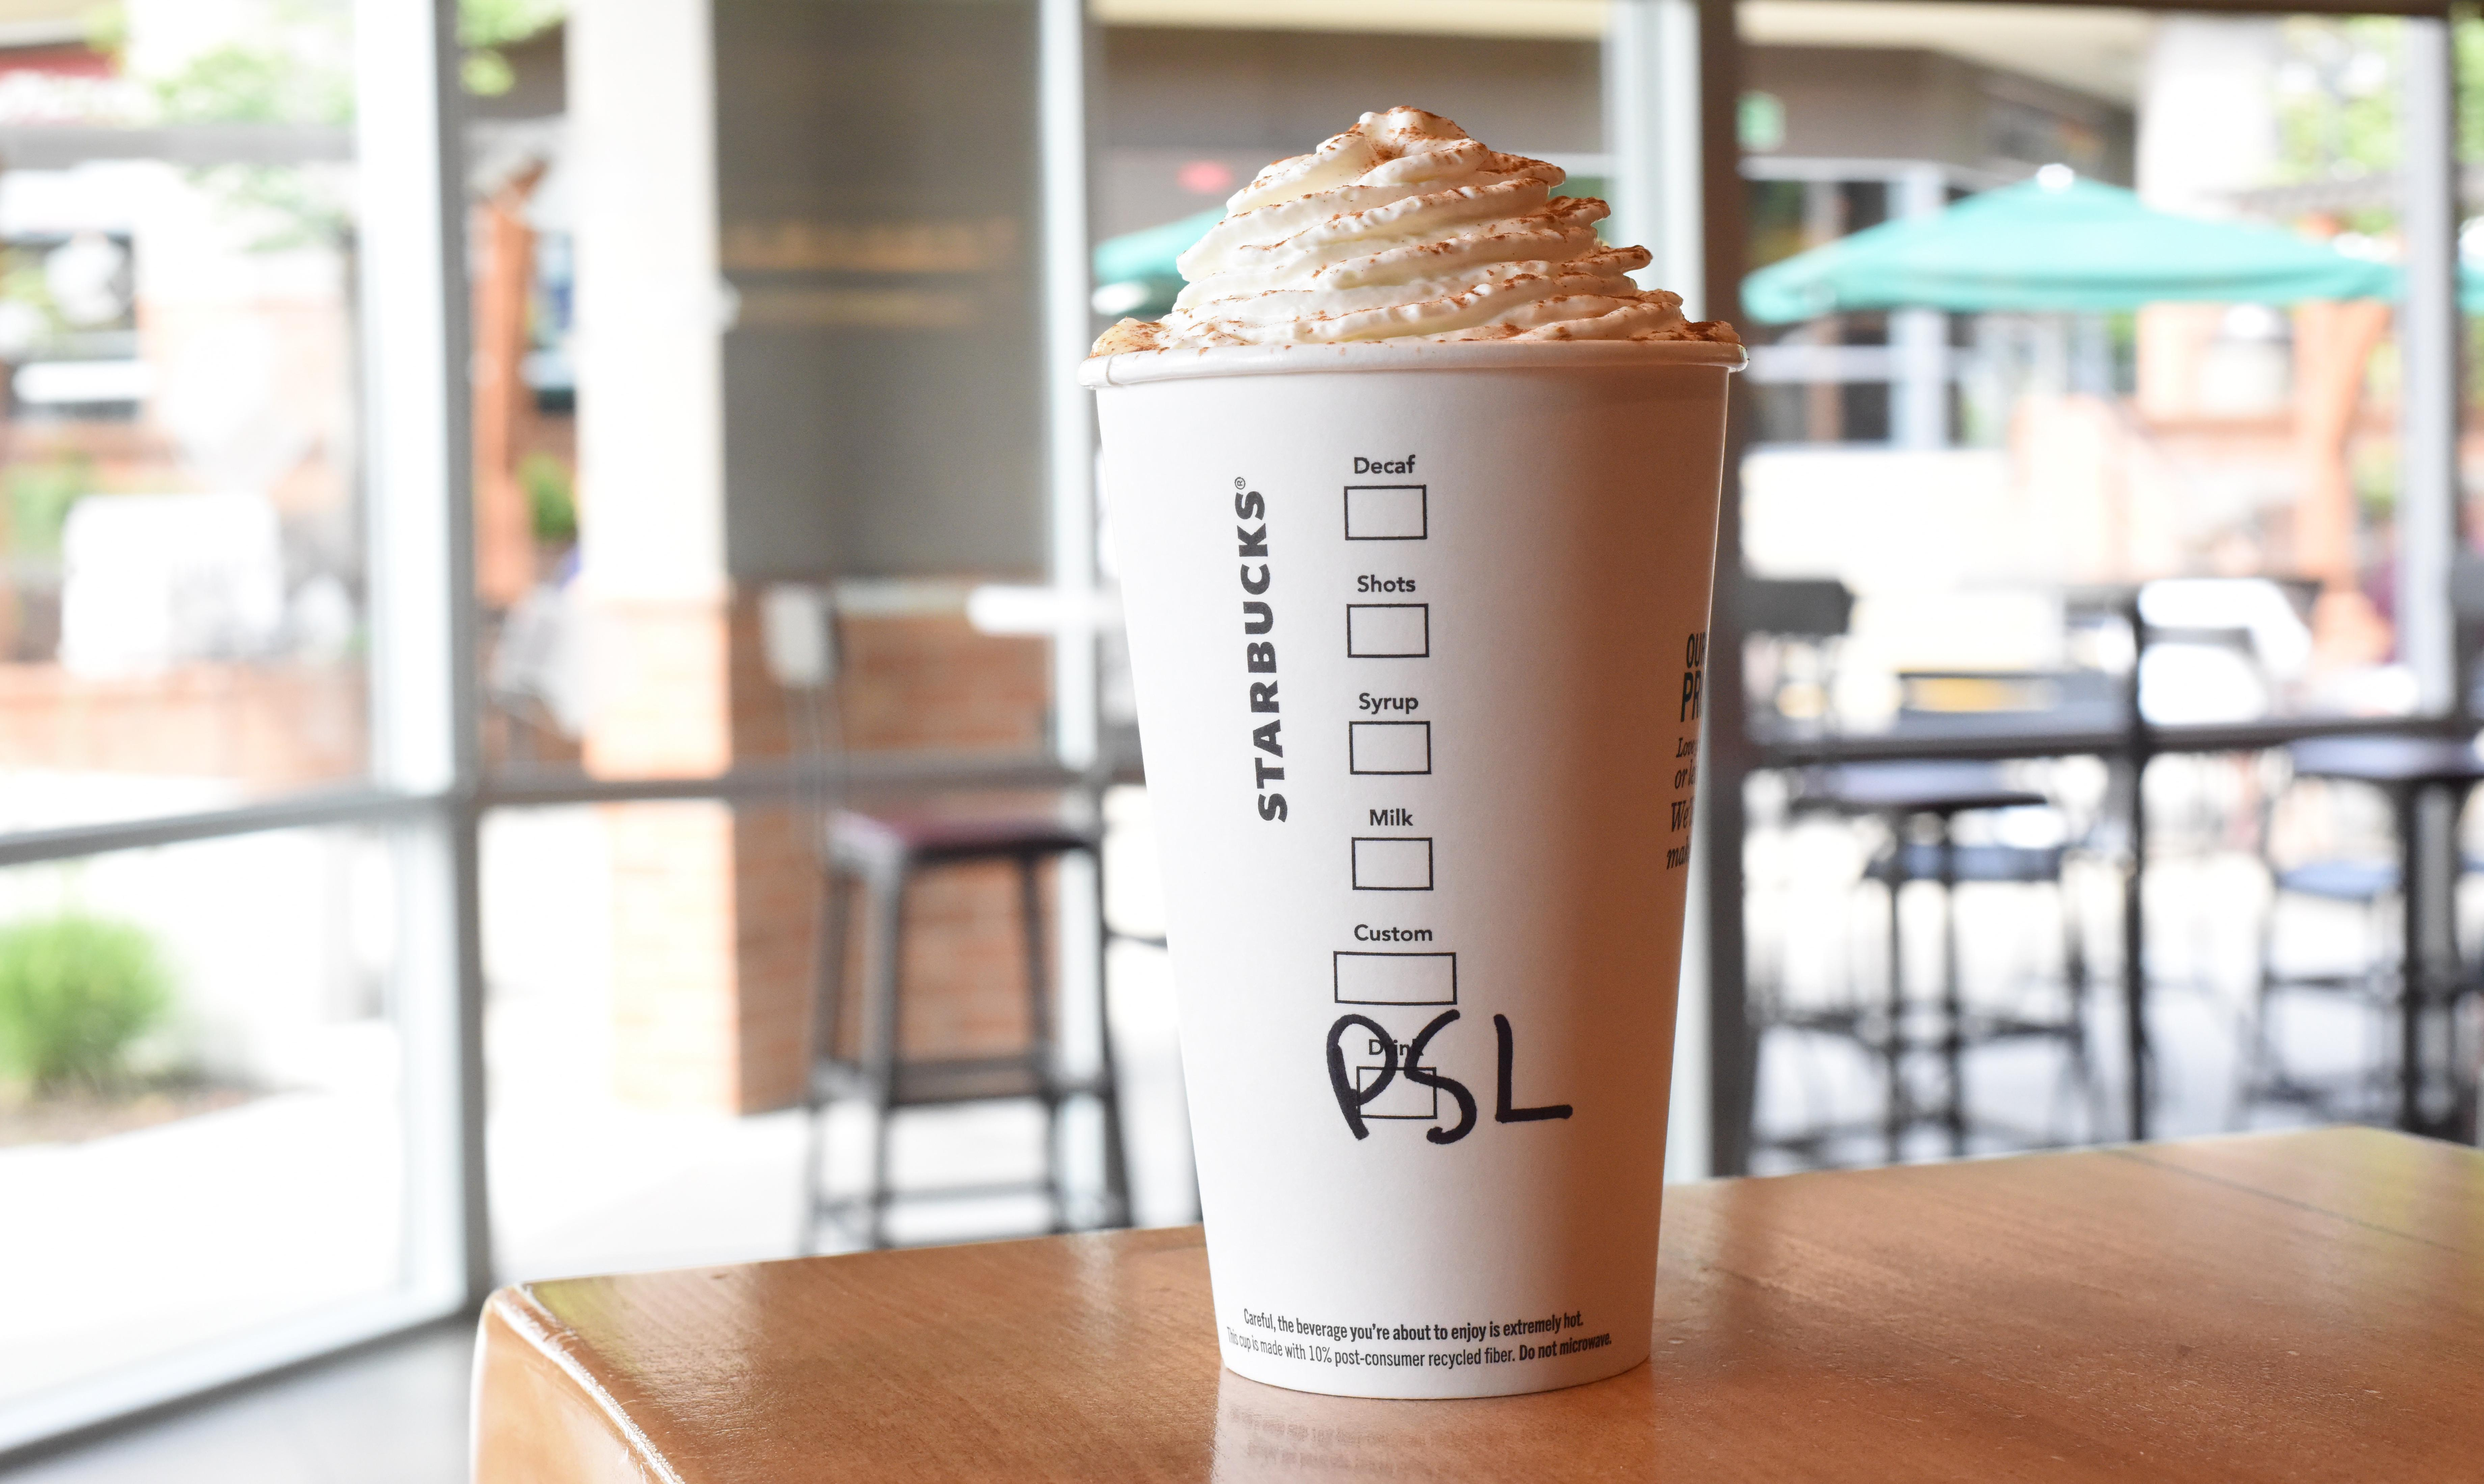 The Pumpkin Spice Latte is back in stores as of August 28, 2018. (Image: Courtesy Starbucks)